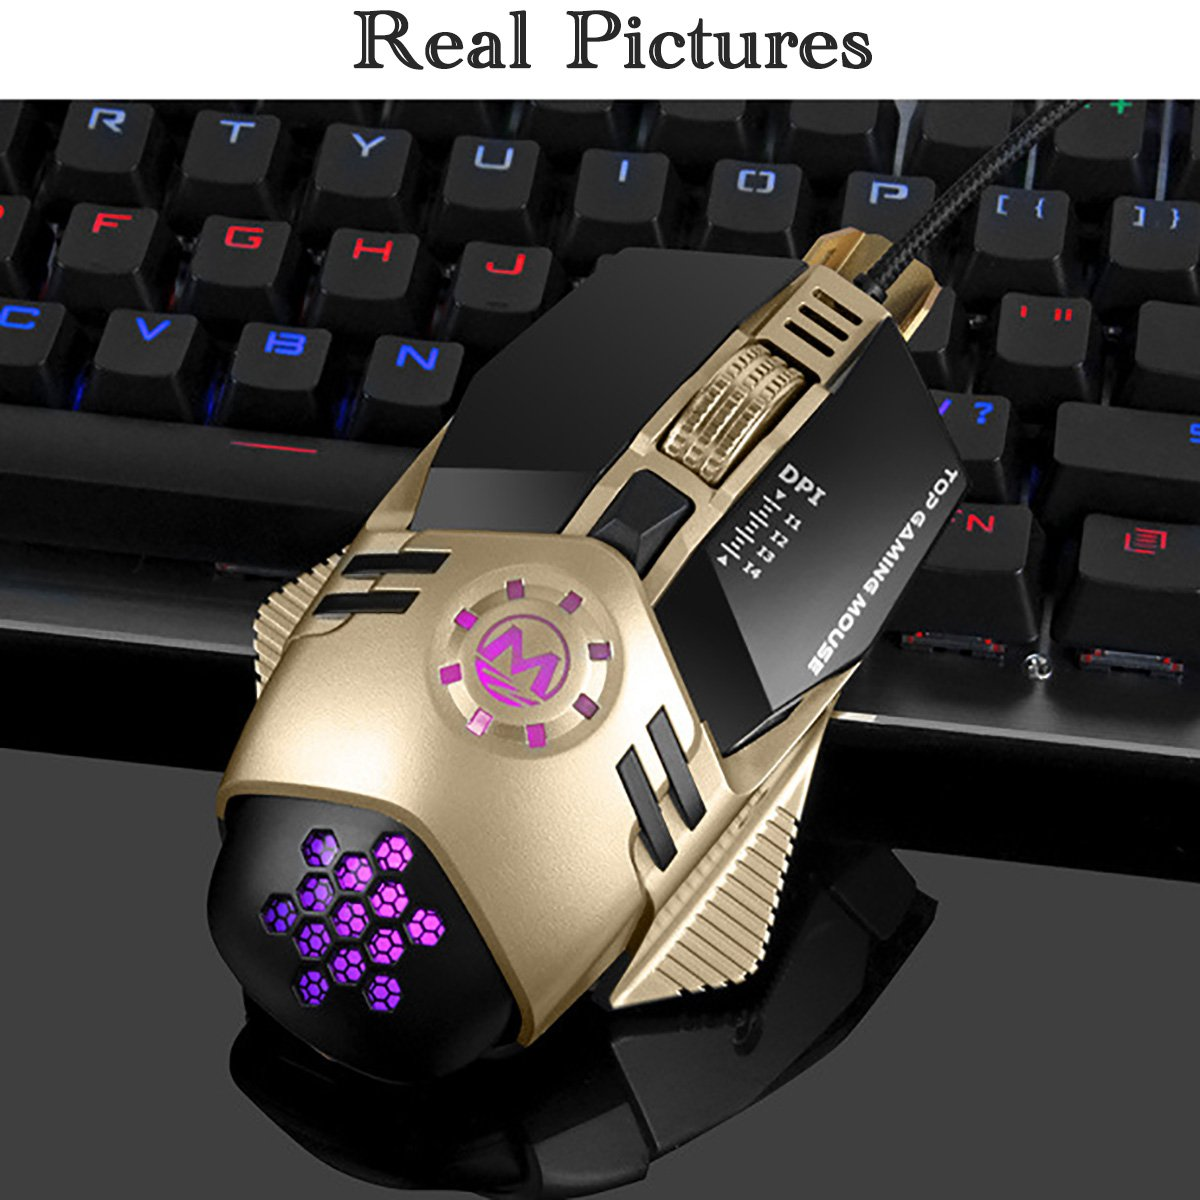 Daftar Harga Mouse Deluxe M811 Termurah 2018 Pomade Toar Ampamp Roby And Tnr Heavy Duty Free Sisir Original Morzzor 3200 Dpi Gaming Mouseoptical Usb Wired Electronics